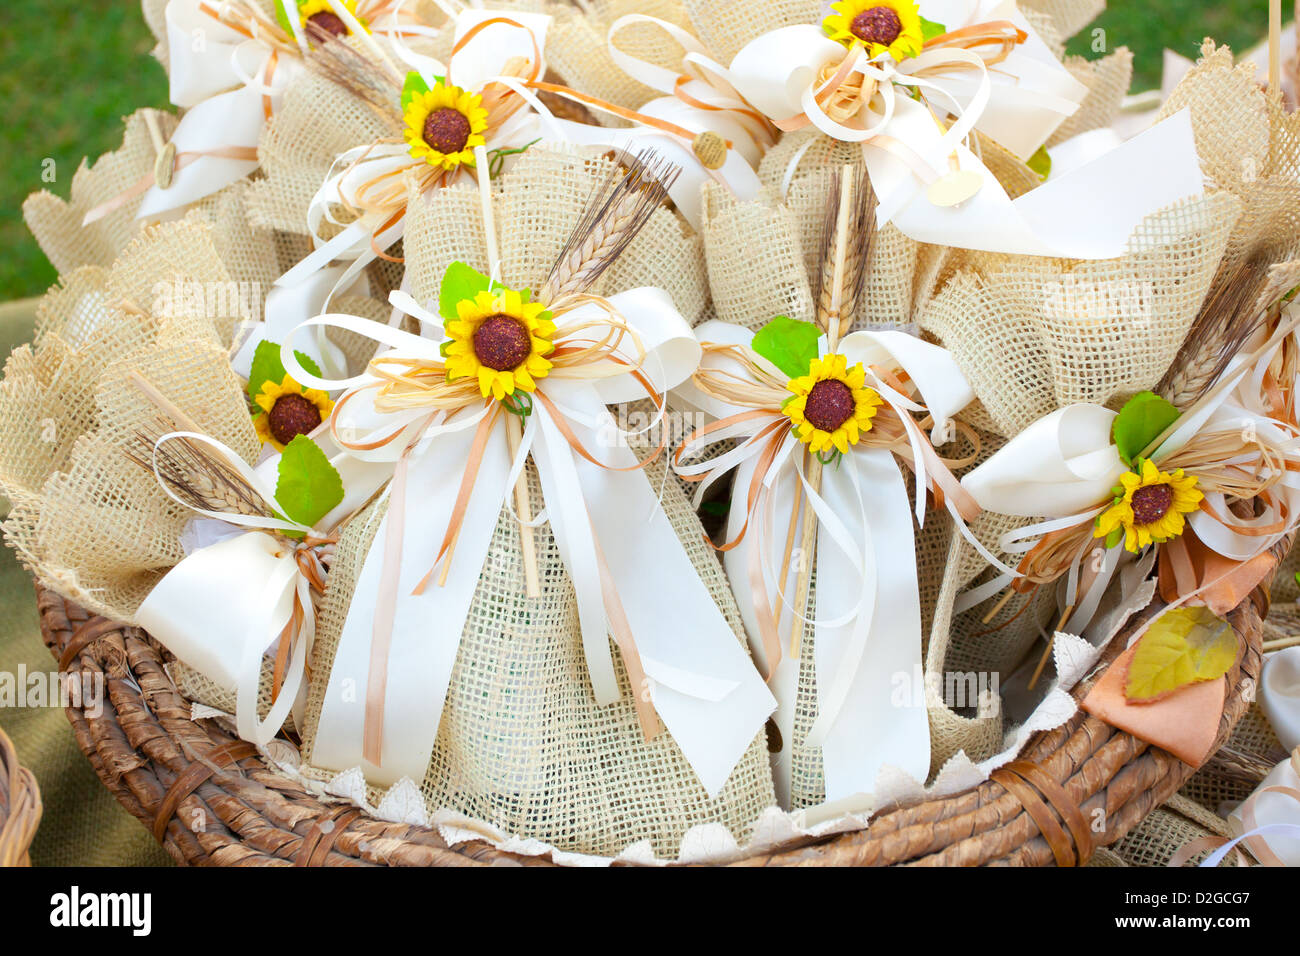 Wedding gifts stock photos wedding gifts stock images alamy jute wedding gifts with sunflowers stock image negle Gallery